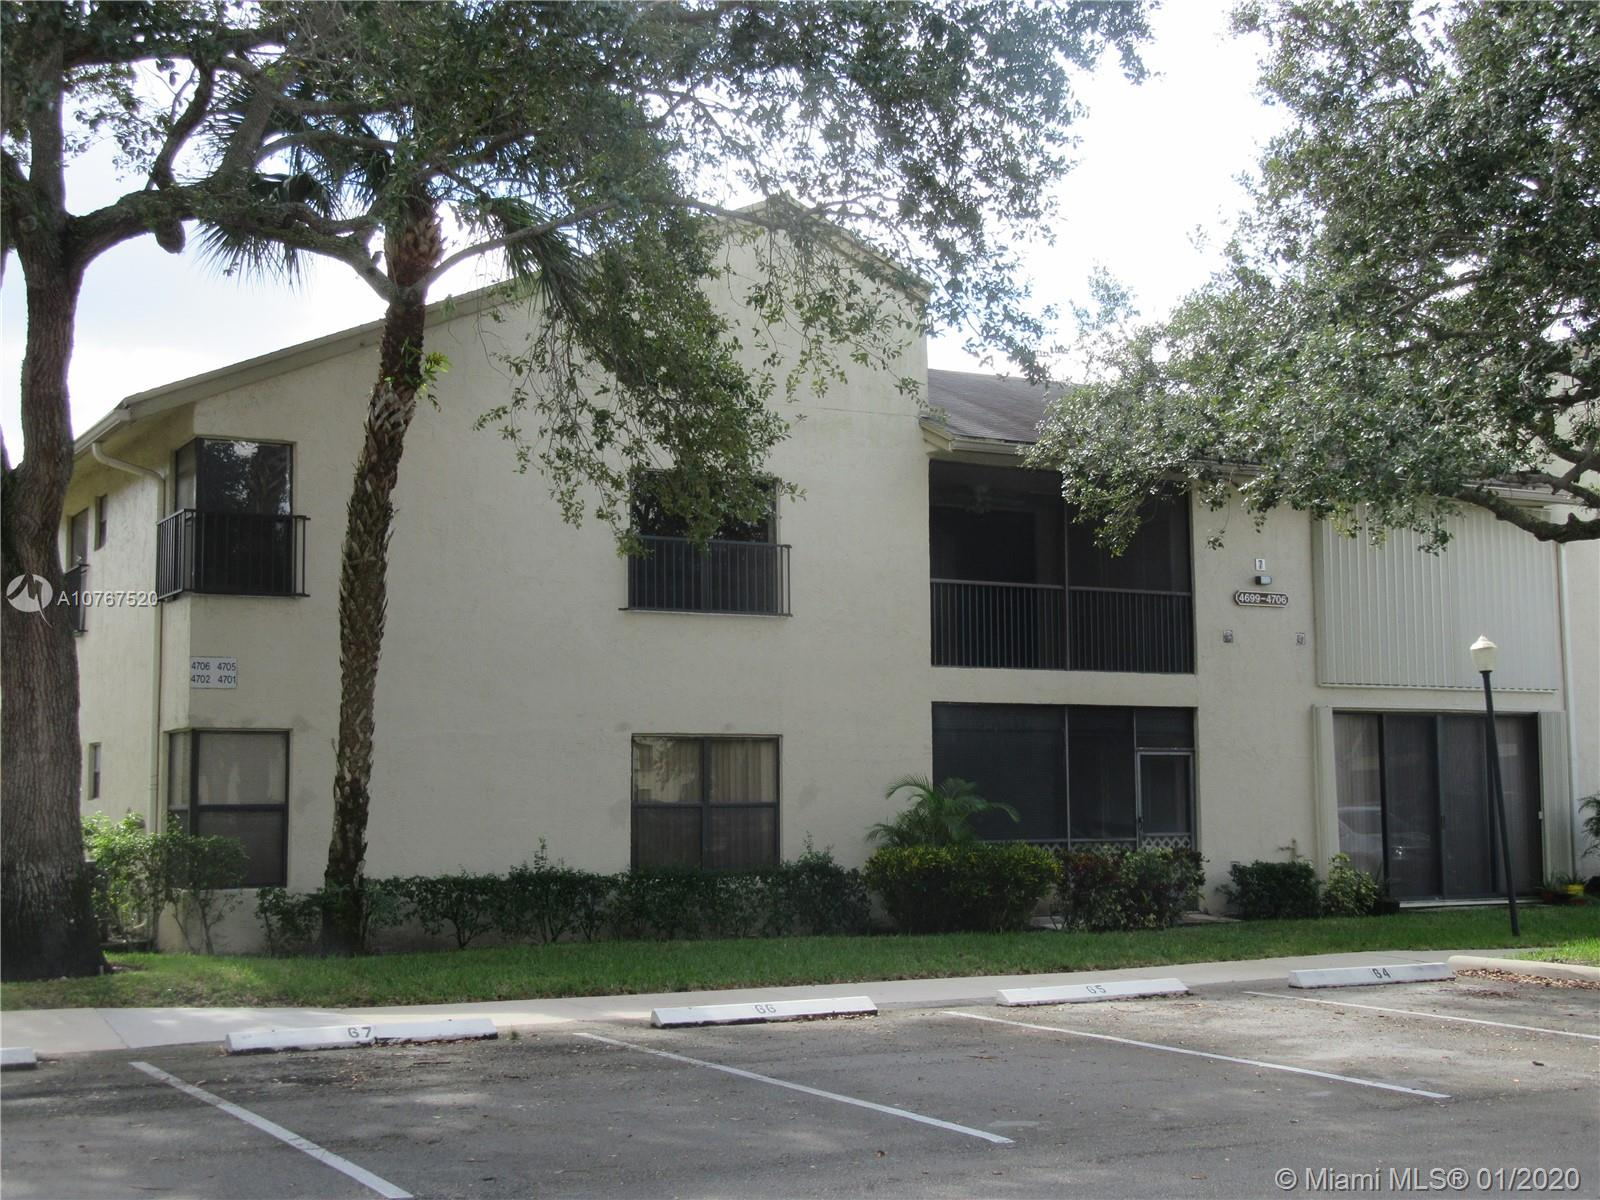 FANTASTIC 3BEDROOM. 2 BATHROOM SECOND FLOOR UNIT. NEW KITCHEN APPLIANCES, FRESHLY PAINTED AND NEW CEILING FANS INSTALLED. It is a split bedroom plan with a large master bedroom with a walk-in closet This is a very quiet area behind the Coconut Creek Police station with all the township amenities included. This unit can be rented after 1 year of ownership. plenty of guest parking by this unit. There are 2 maintenance payments $339 per month to Baywood Village 2 and $158 per quarter to the Township Community Master Association